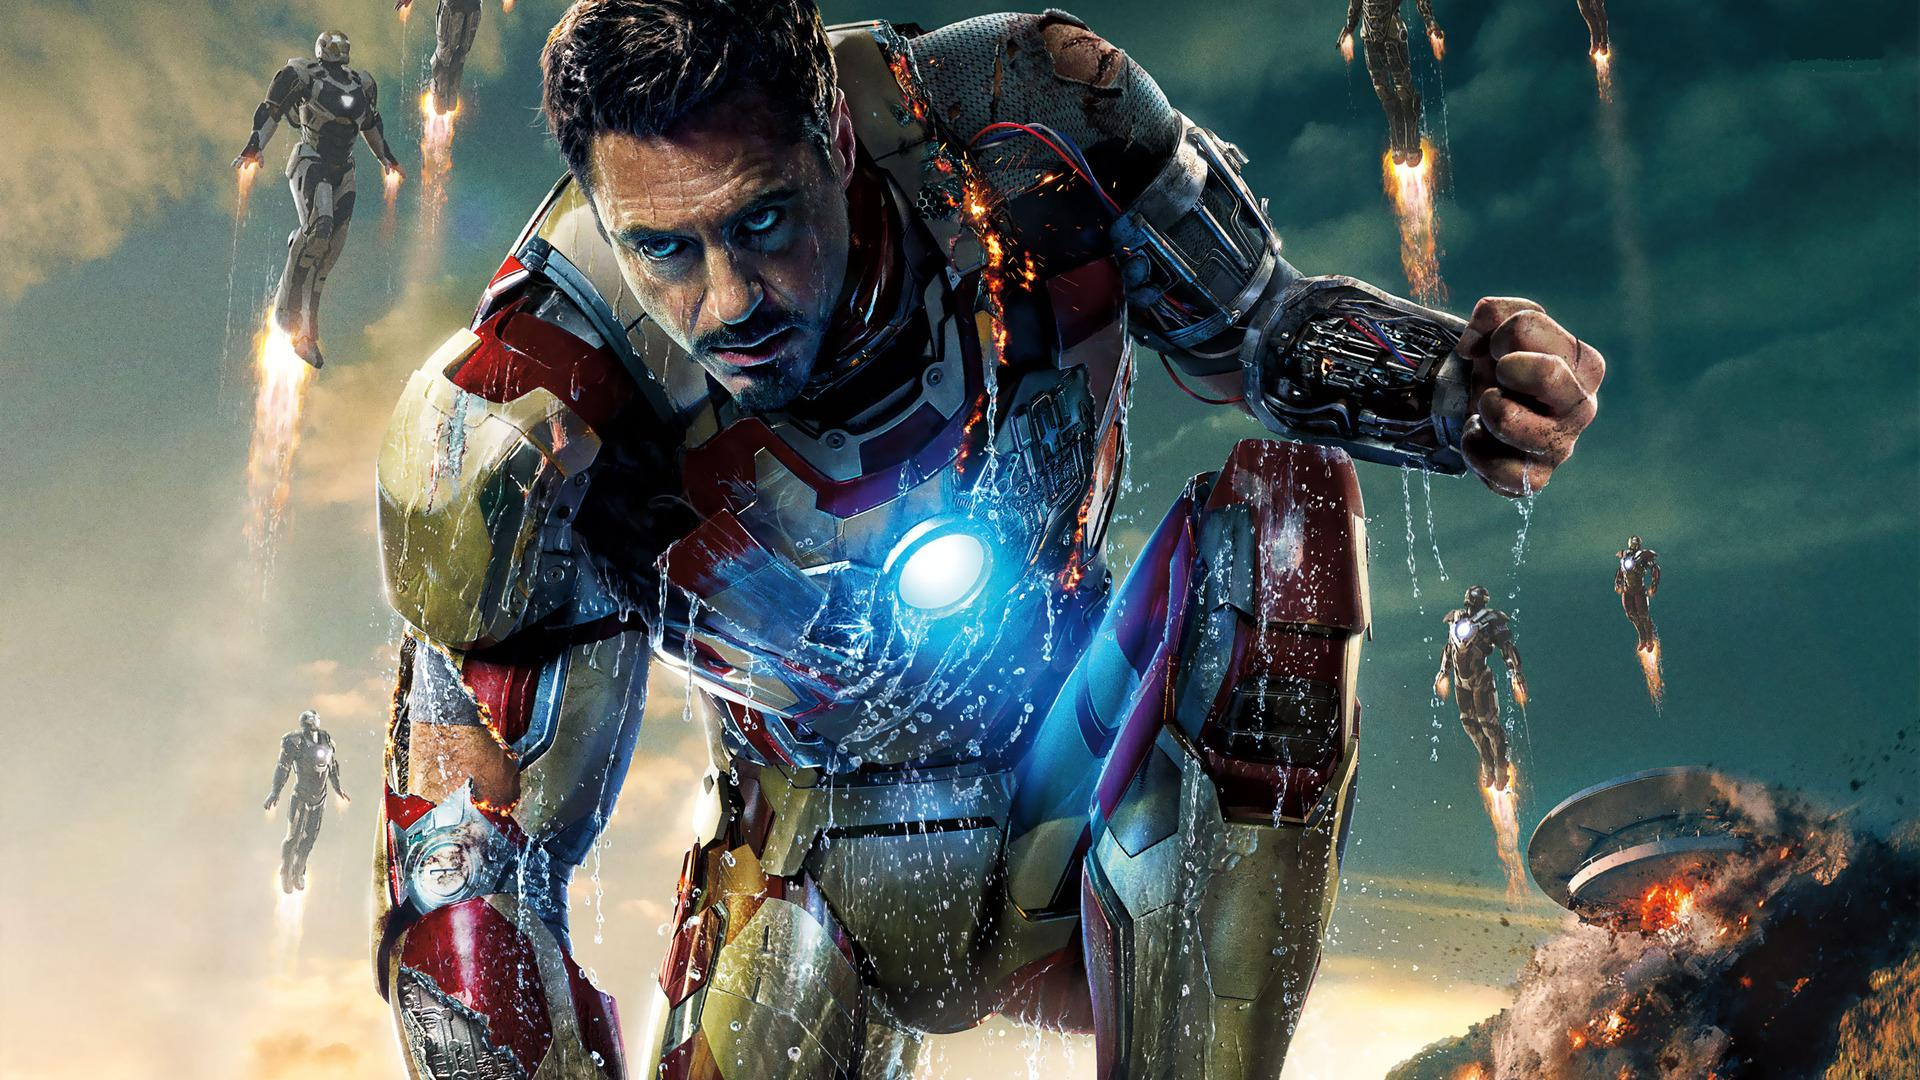 Iron Man HD Wallpapers 1080p - WallpaperSafari